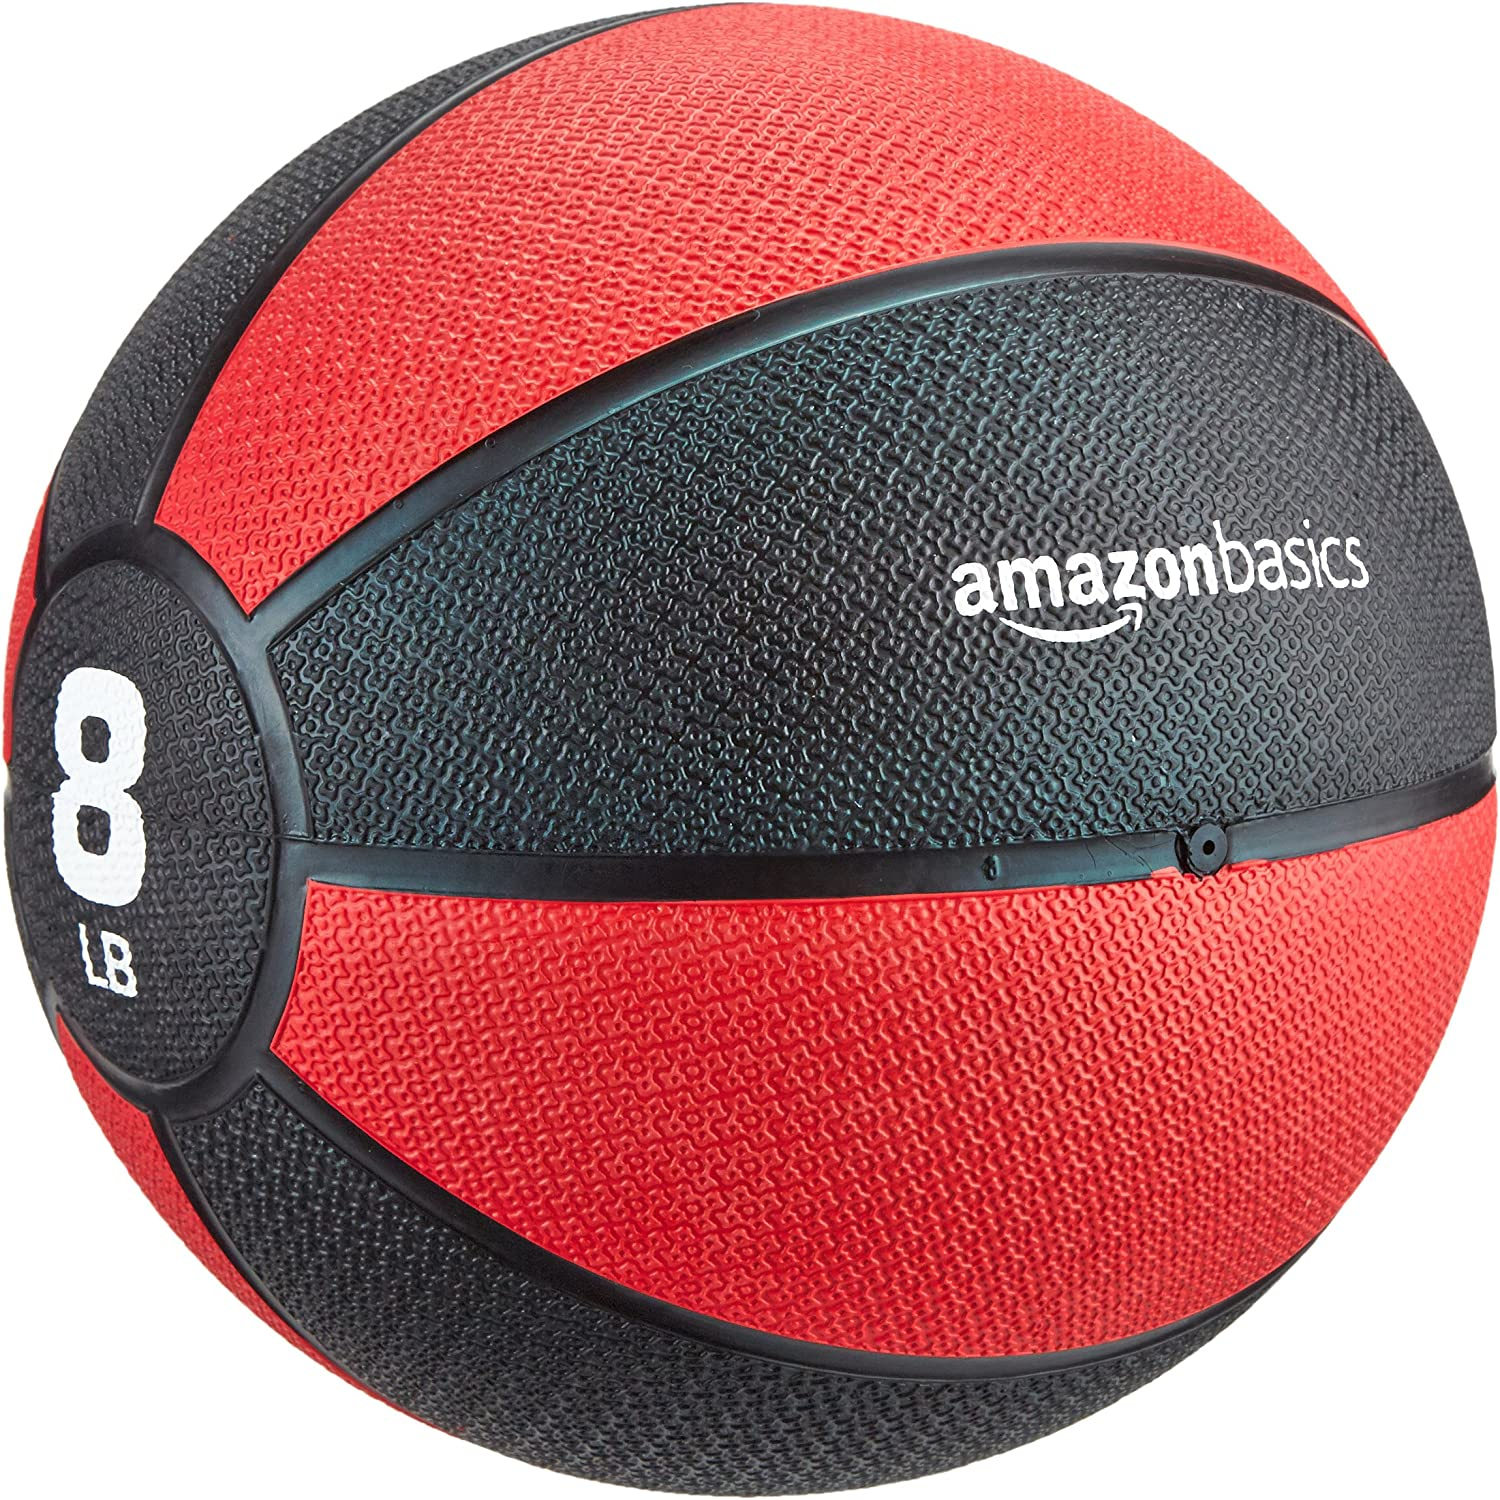 Amazon Basics Medicine Ball for Workouts Exercise Balance Training